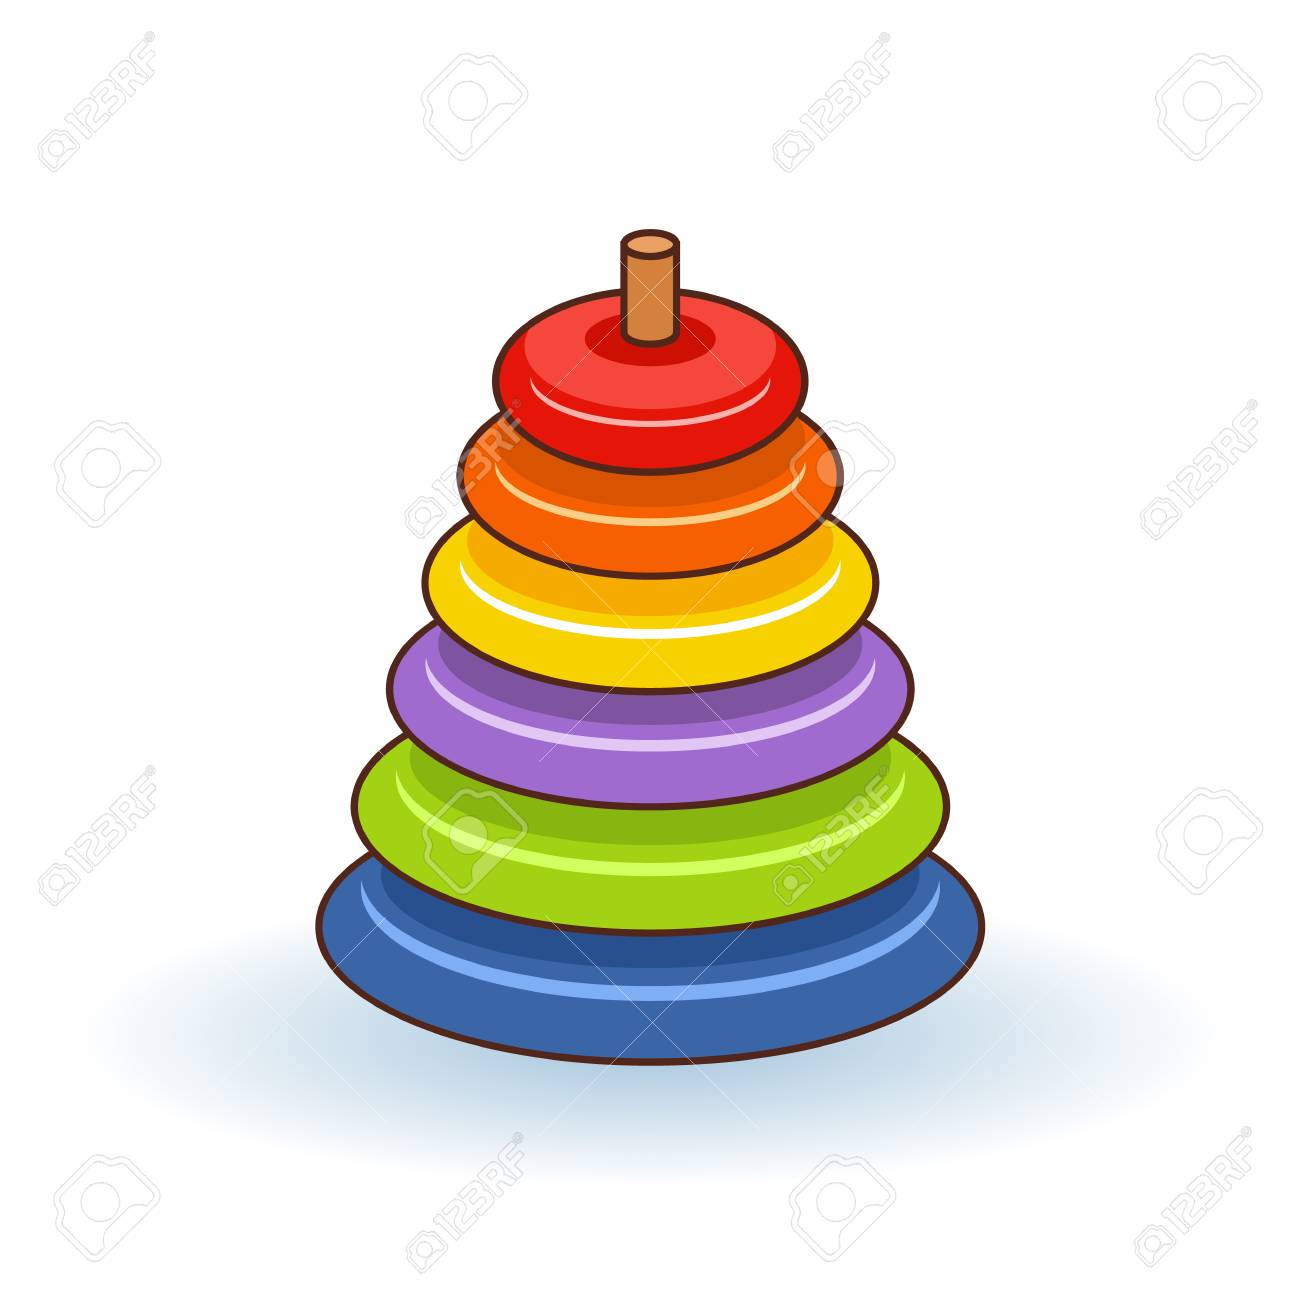 8f3771385ed3b Pyramid icon. Childrens colorful plastic toy. Rainbow color stacking..